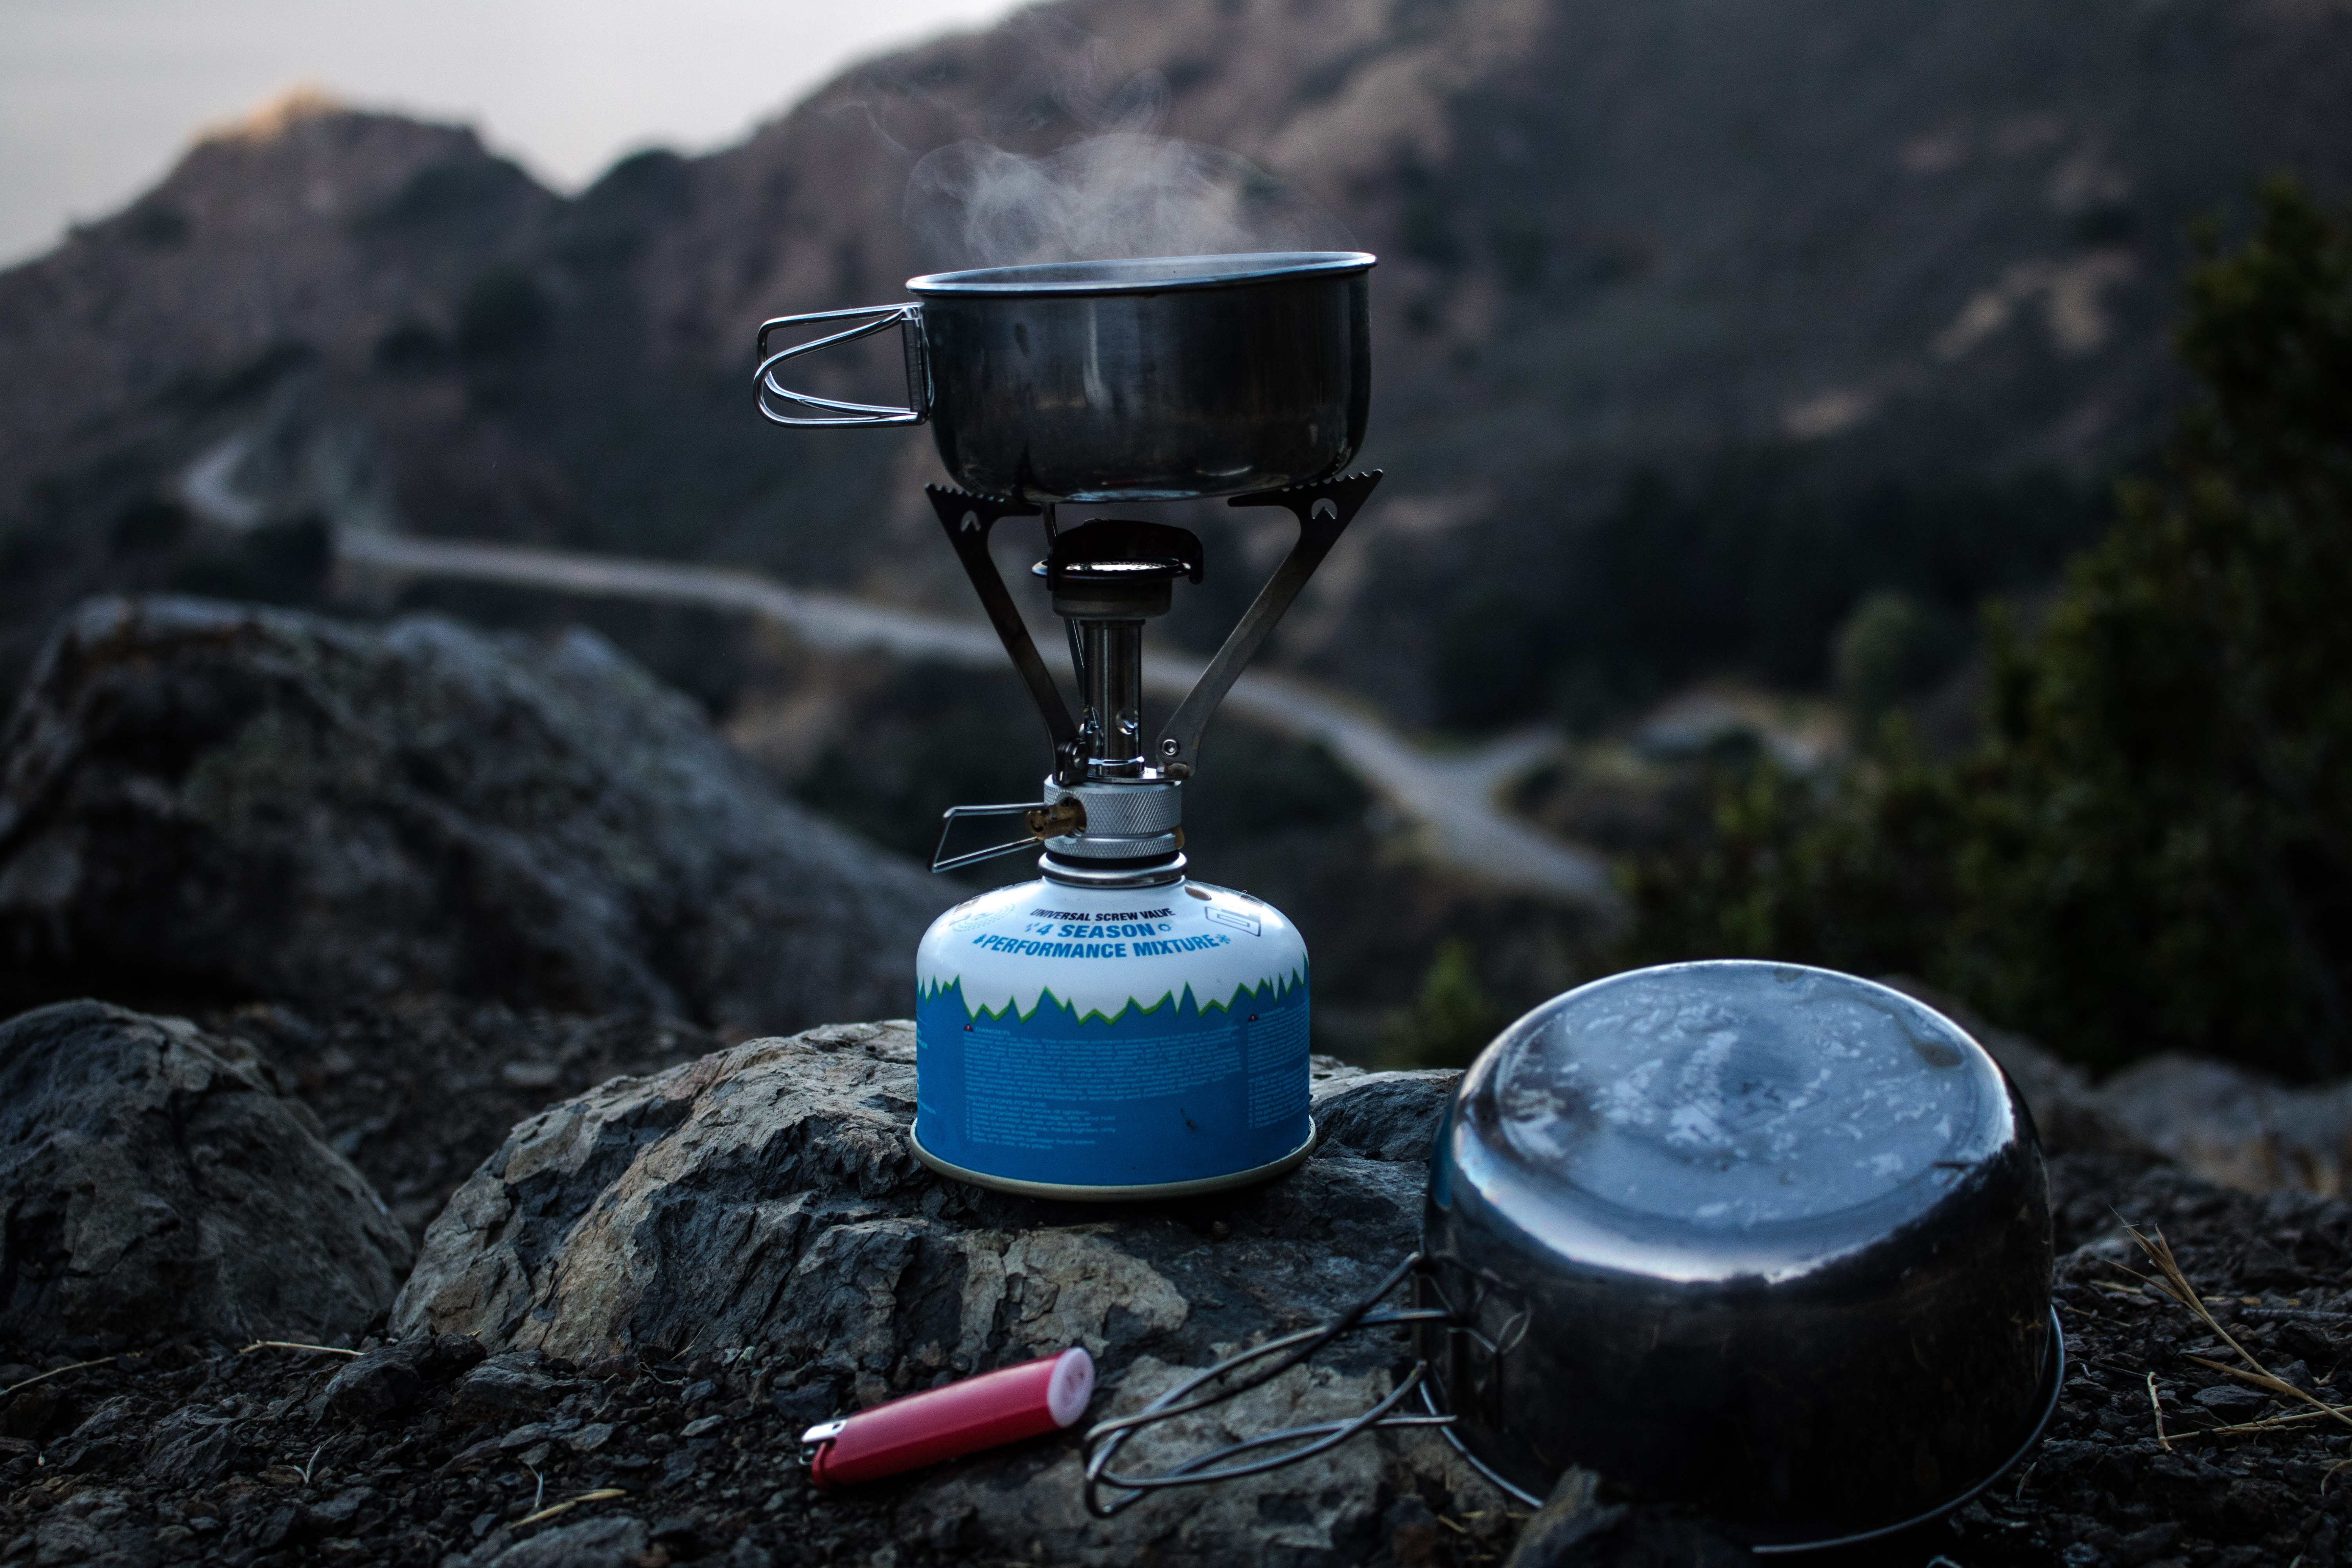 Lighter and gas stove with mountain in the background